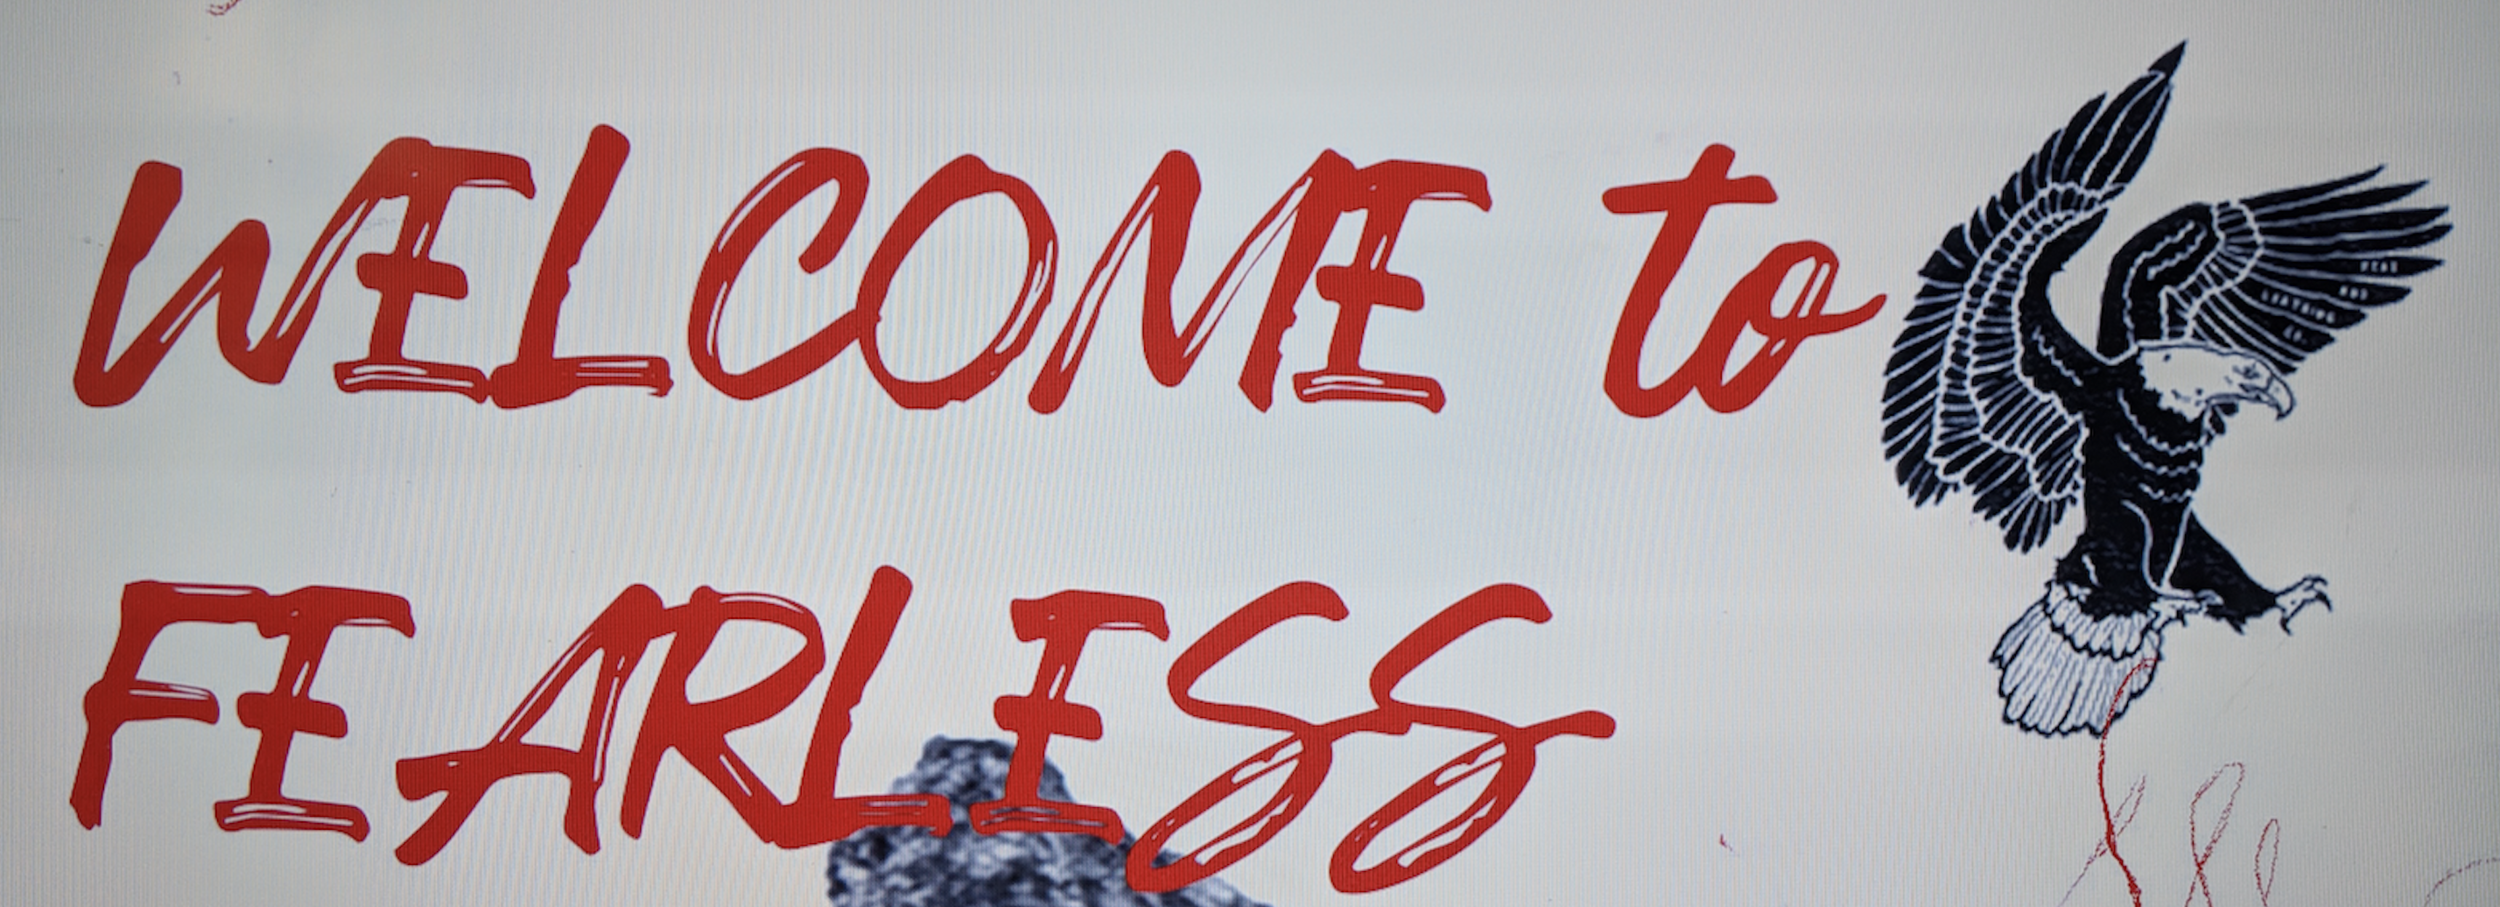 banner_welcome-to-fearless-compact.png